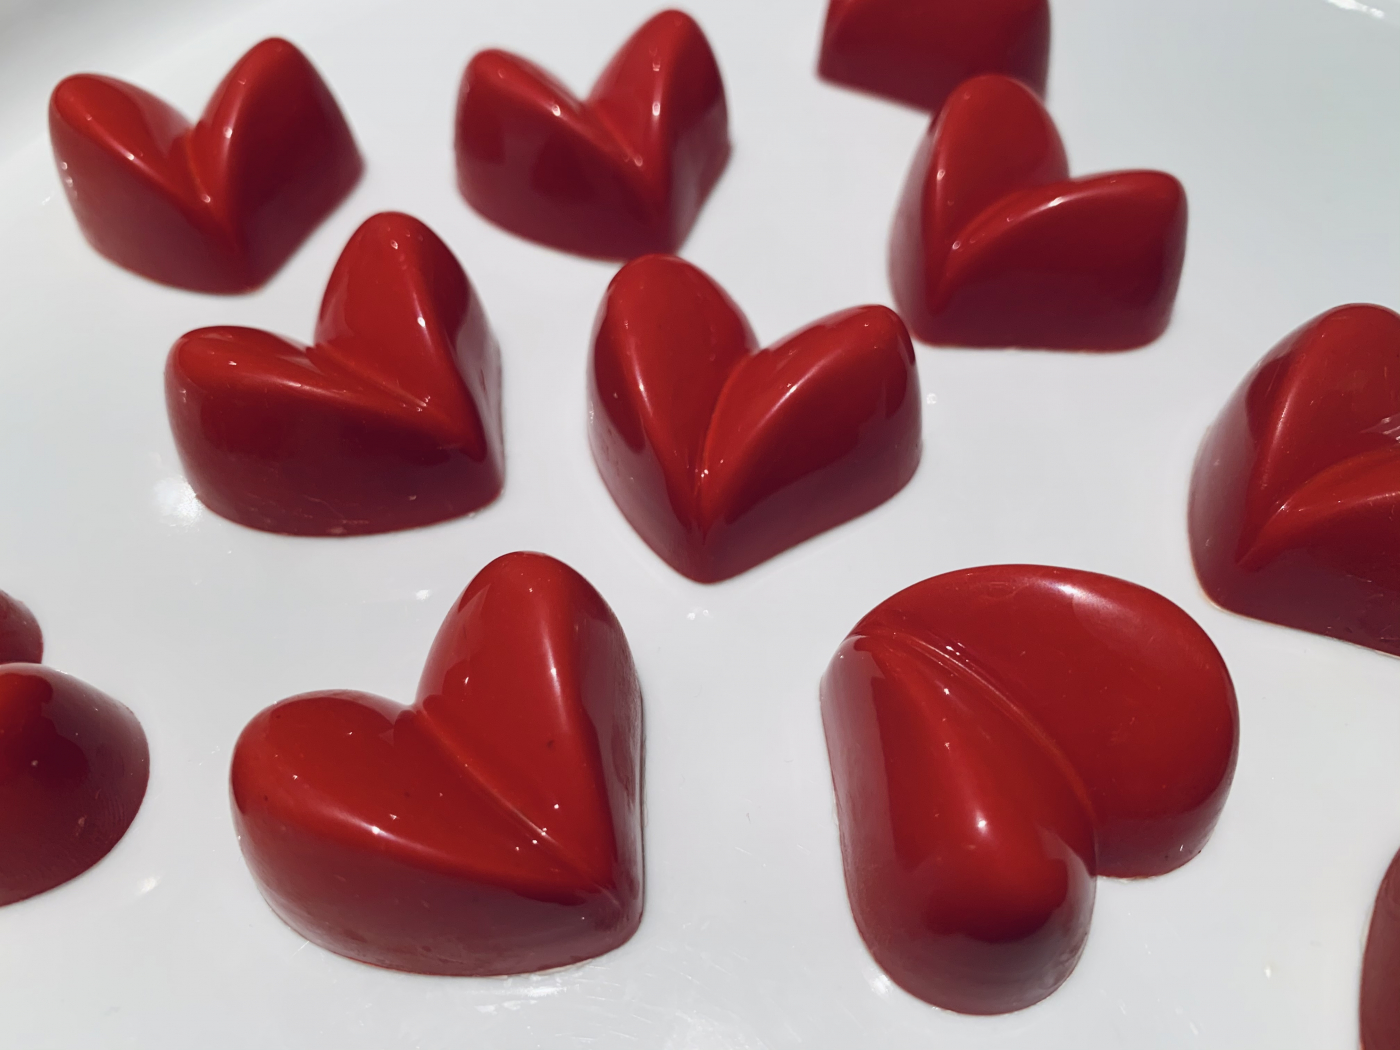 White chocolate and passion fruit heart bonbons.